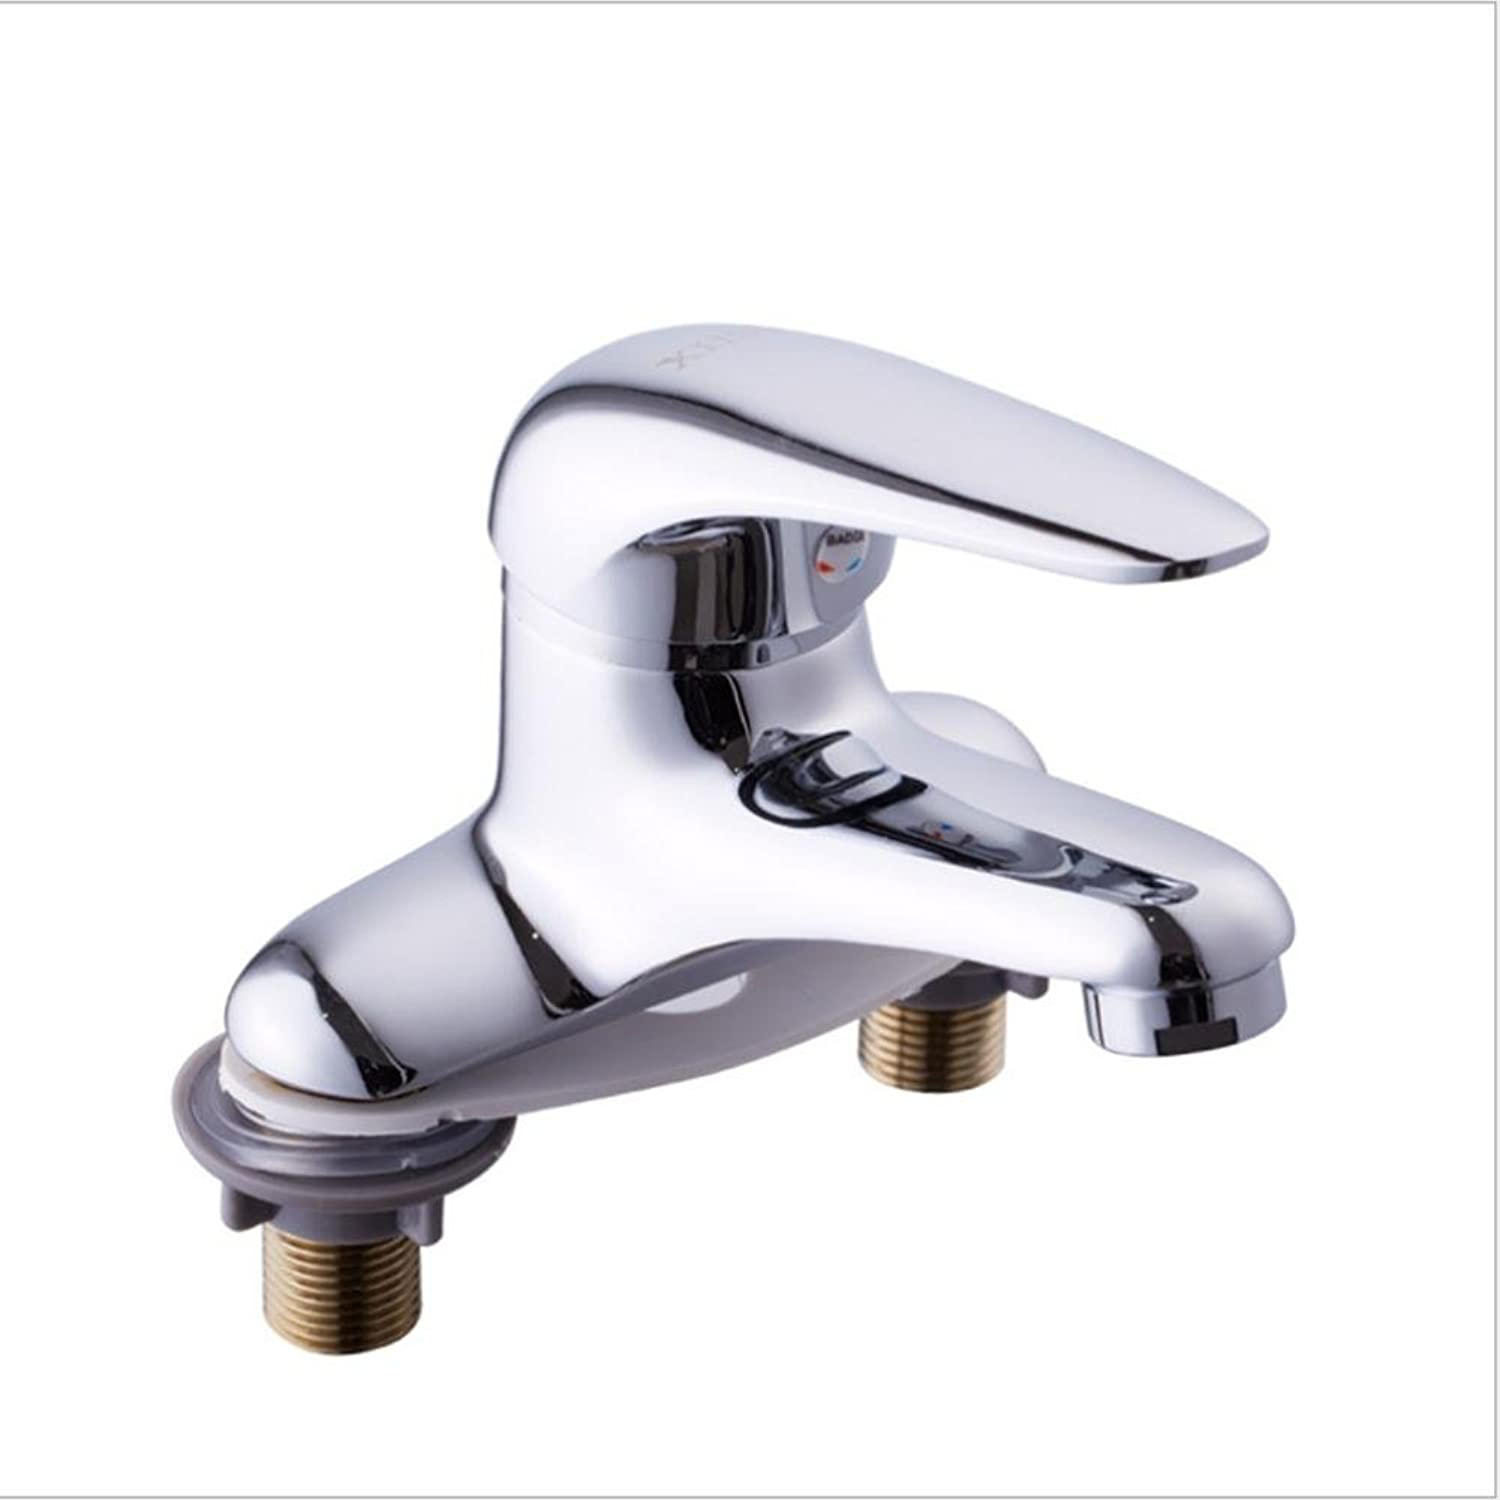 ZHIYUAN Fashion high-end ware Centerset Antique Hot and cold Faucets Retro Kitchen sink copper Mixing faucets